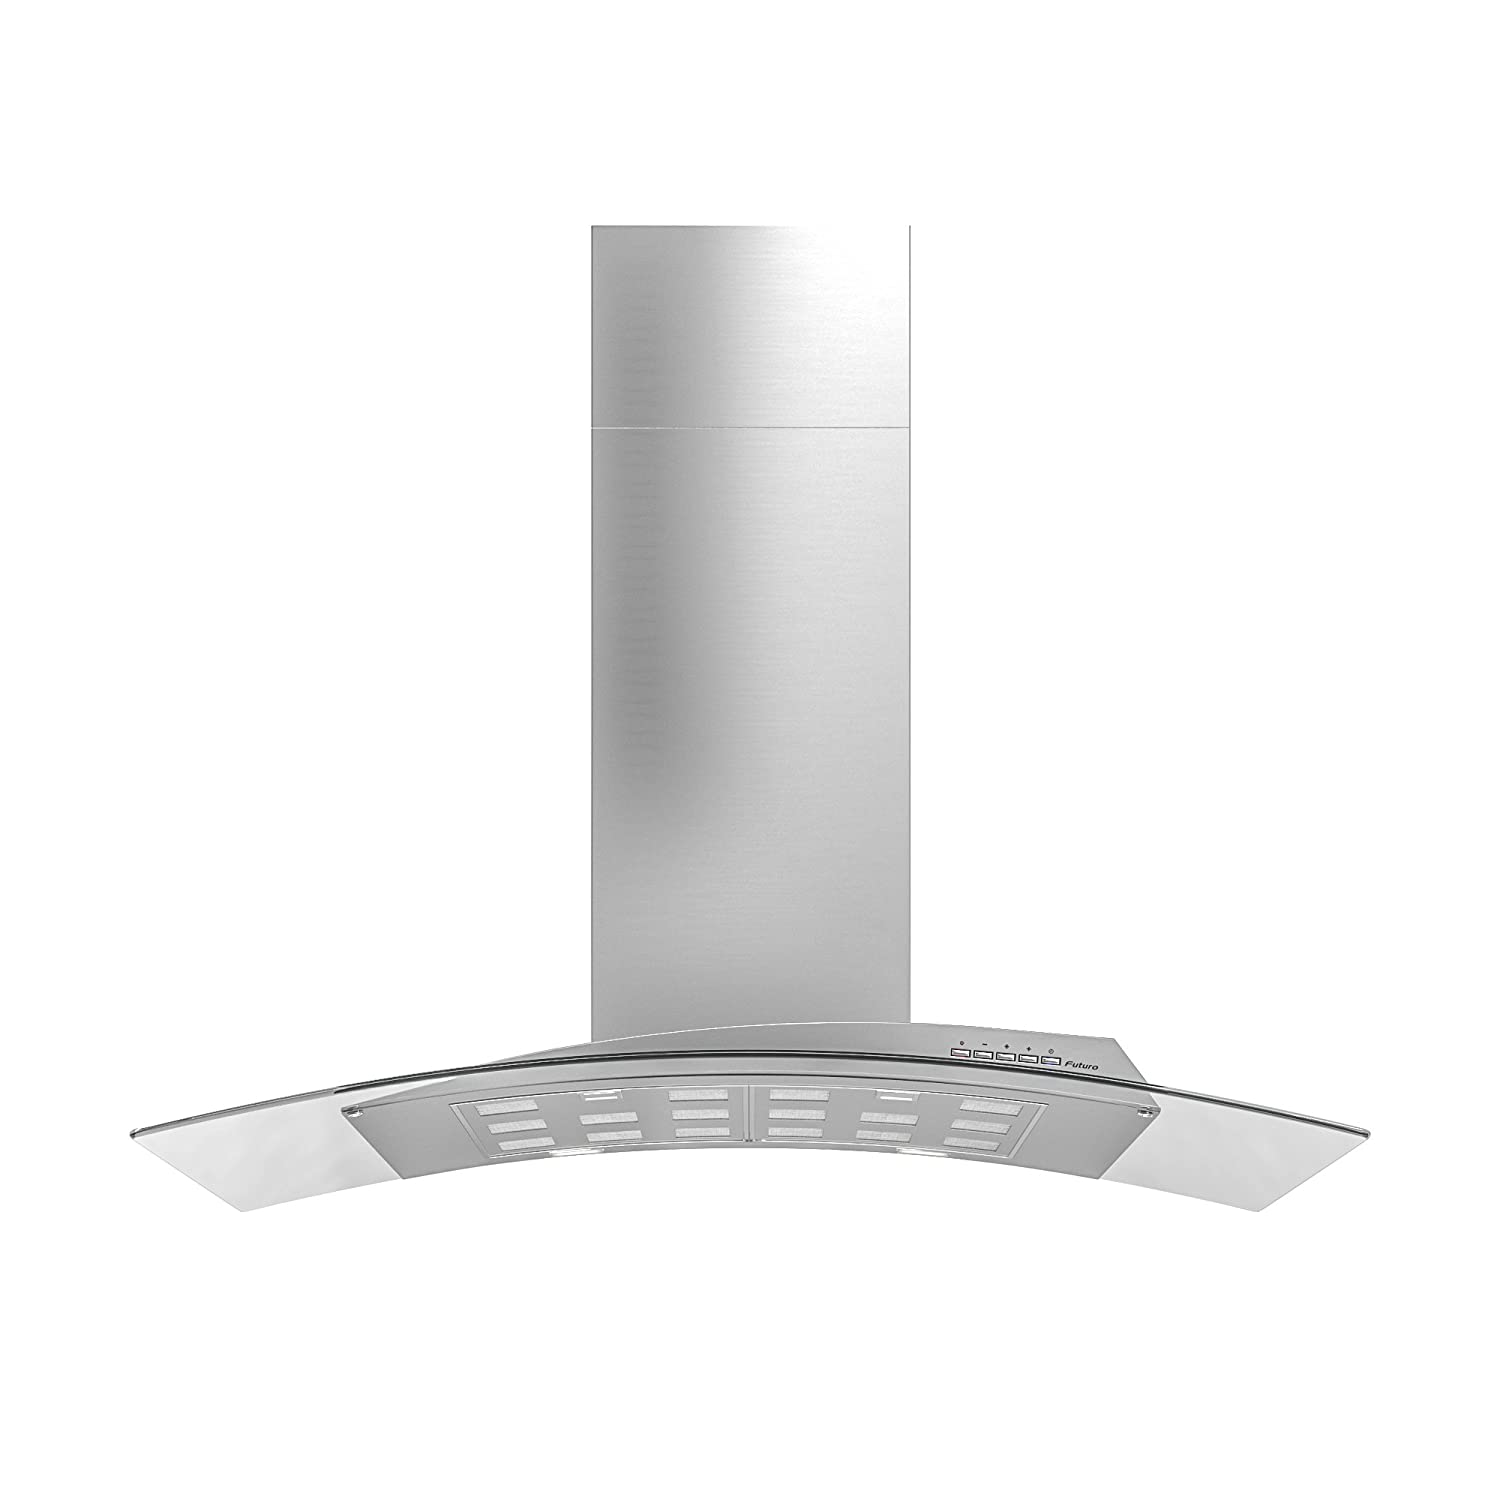 Futuro Futuro Acqualina Glass 36 Inch Wall-mount Contremorary Range Hood - Modern Stainless Steel & Glass Vent Hood - LED, Ultra-Quiet with Blower